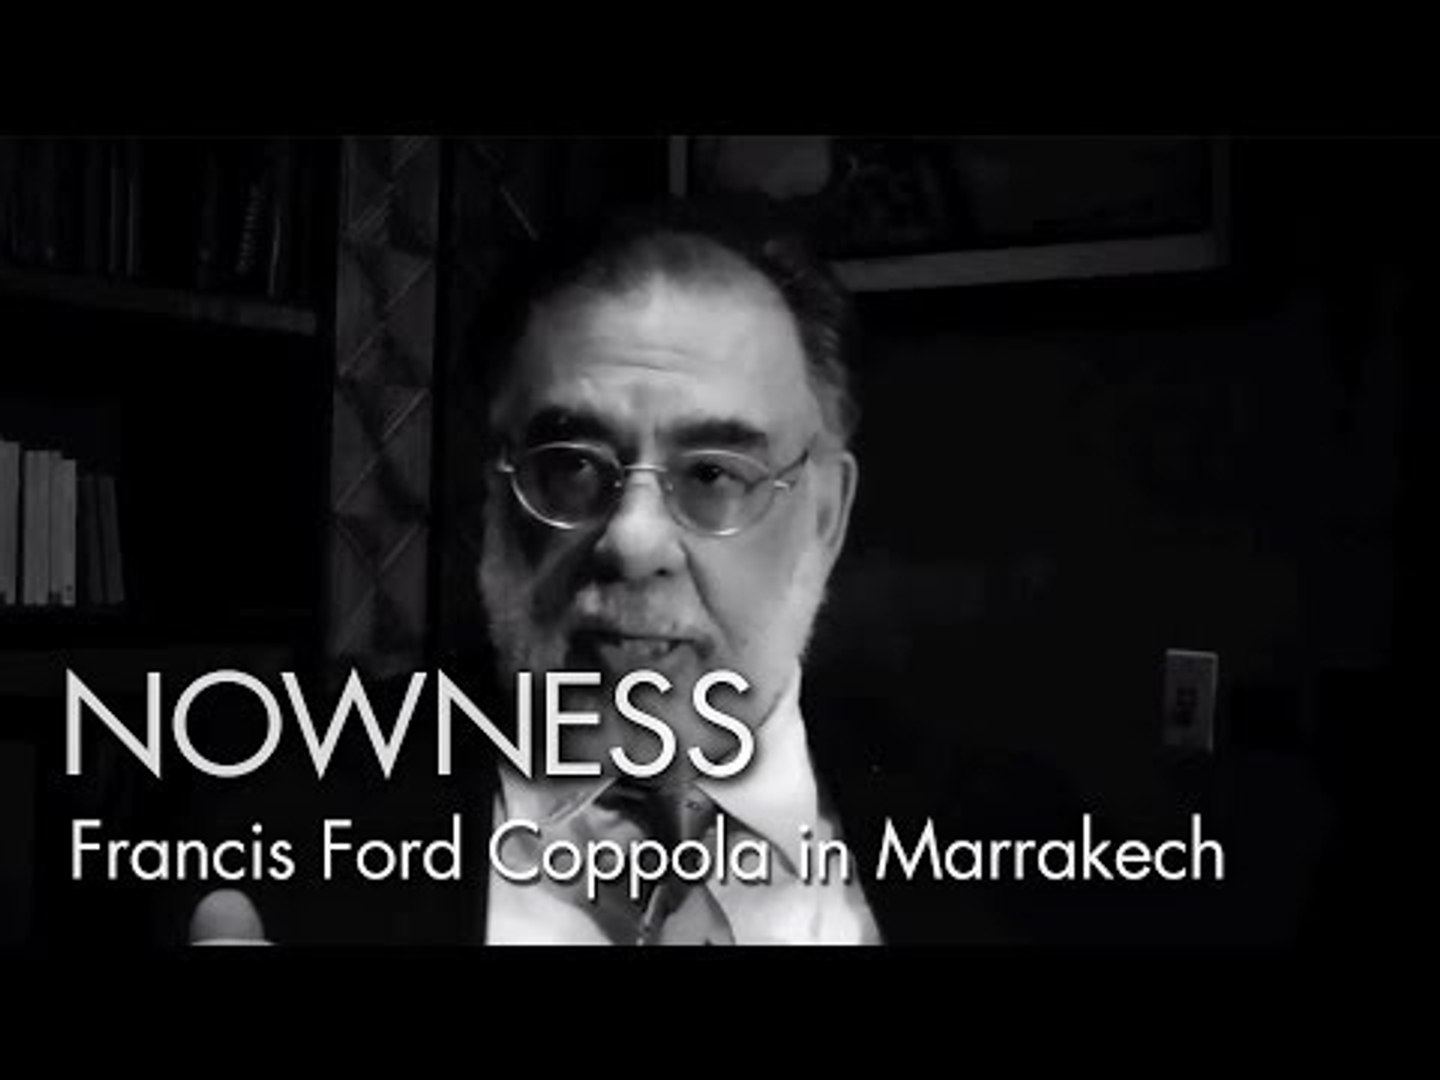 """""""The Creative Process According to Francis Ford Coppola"""" by Carlo Lavagna and Roberto de Paolis"""